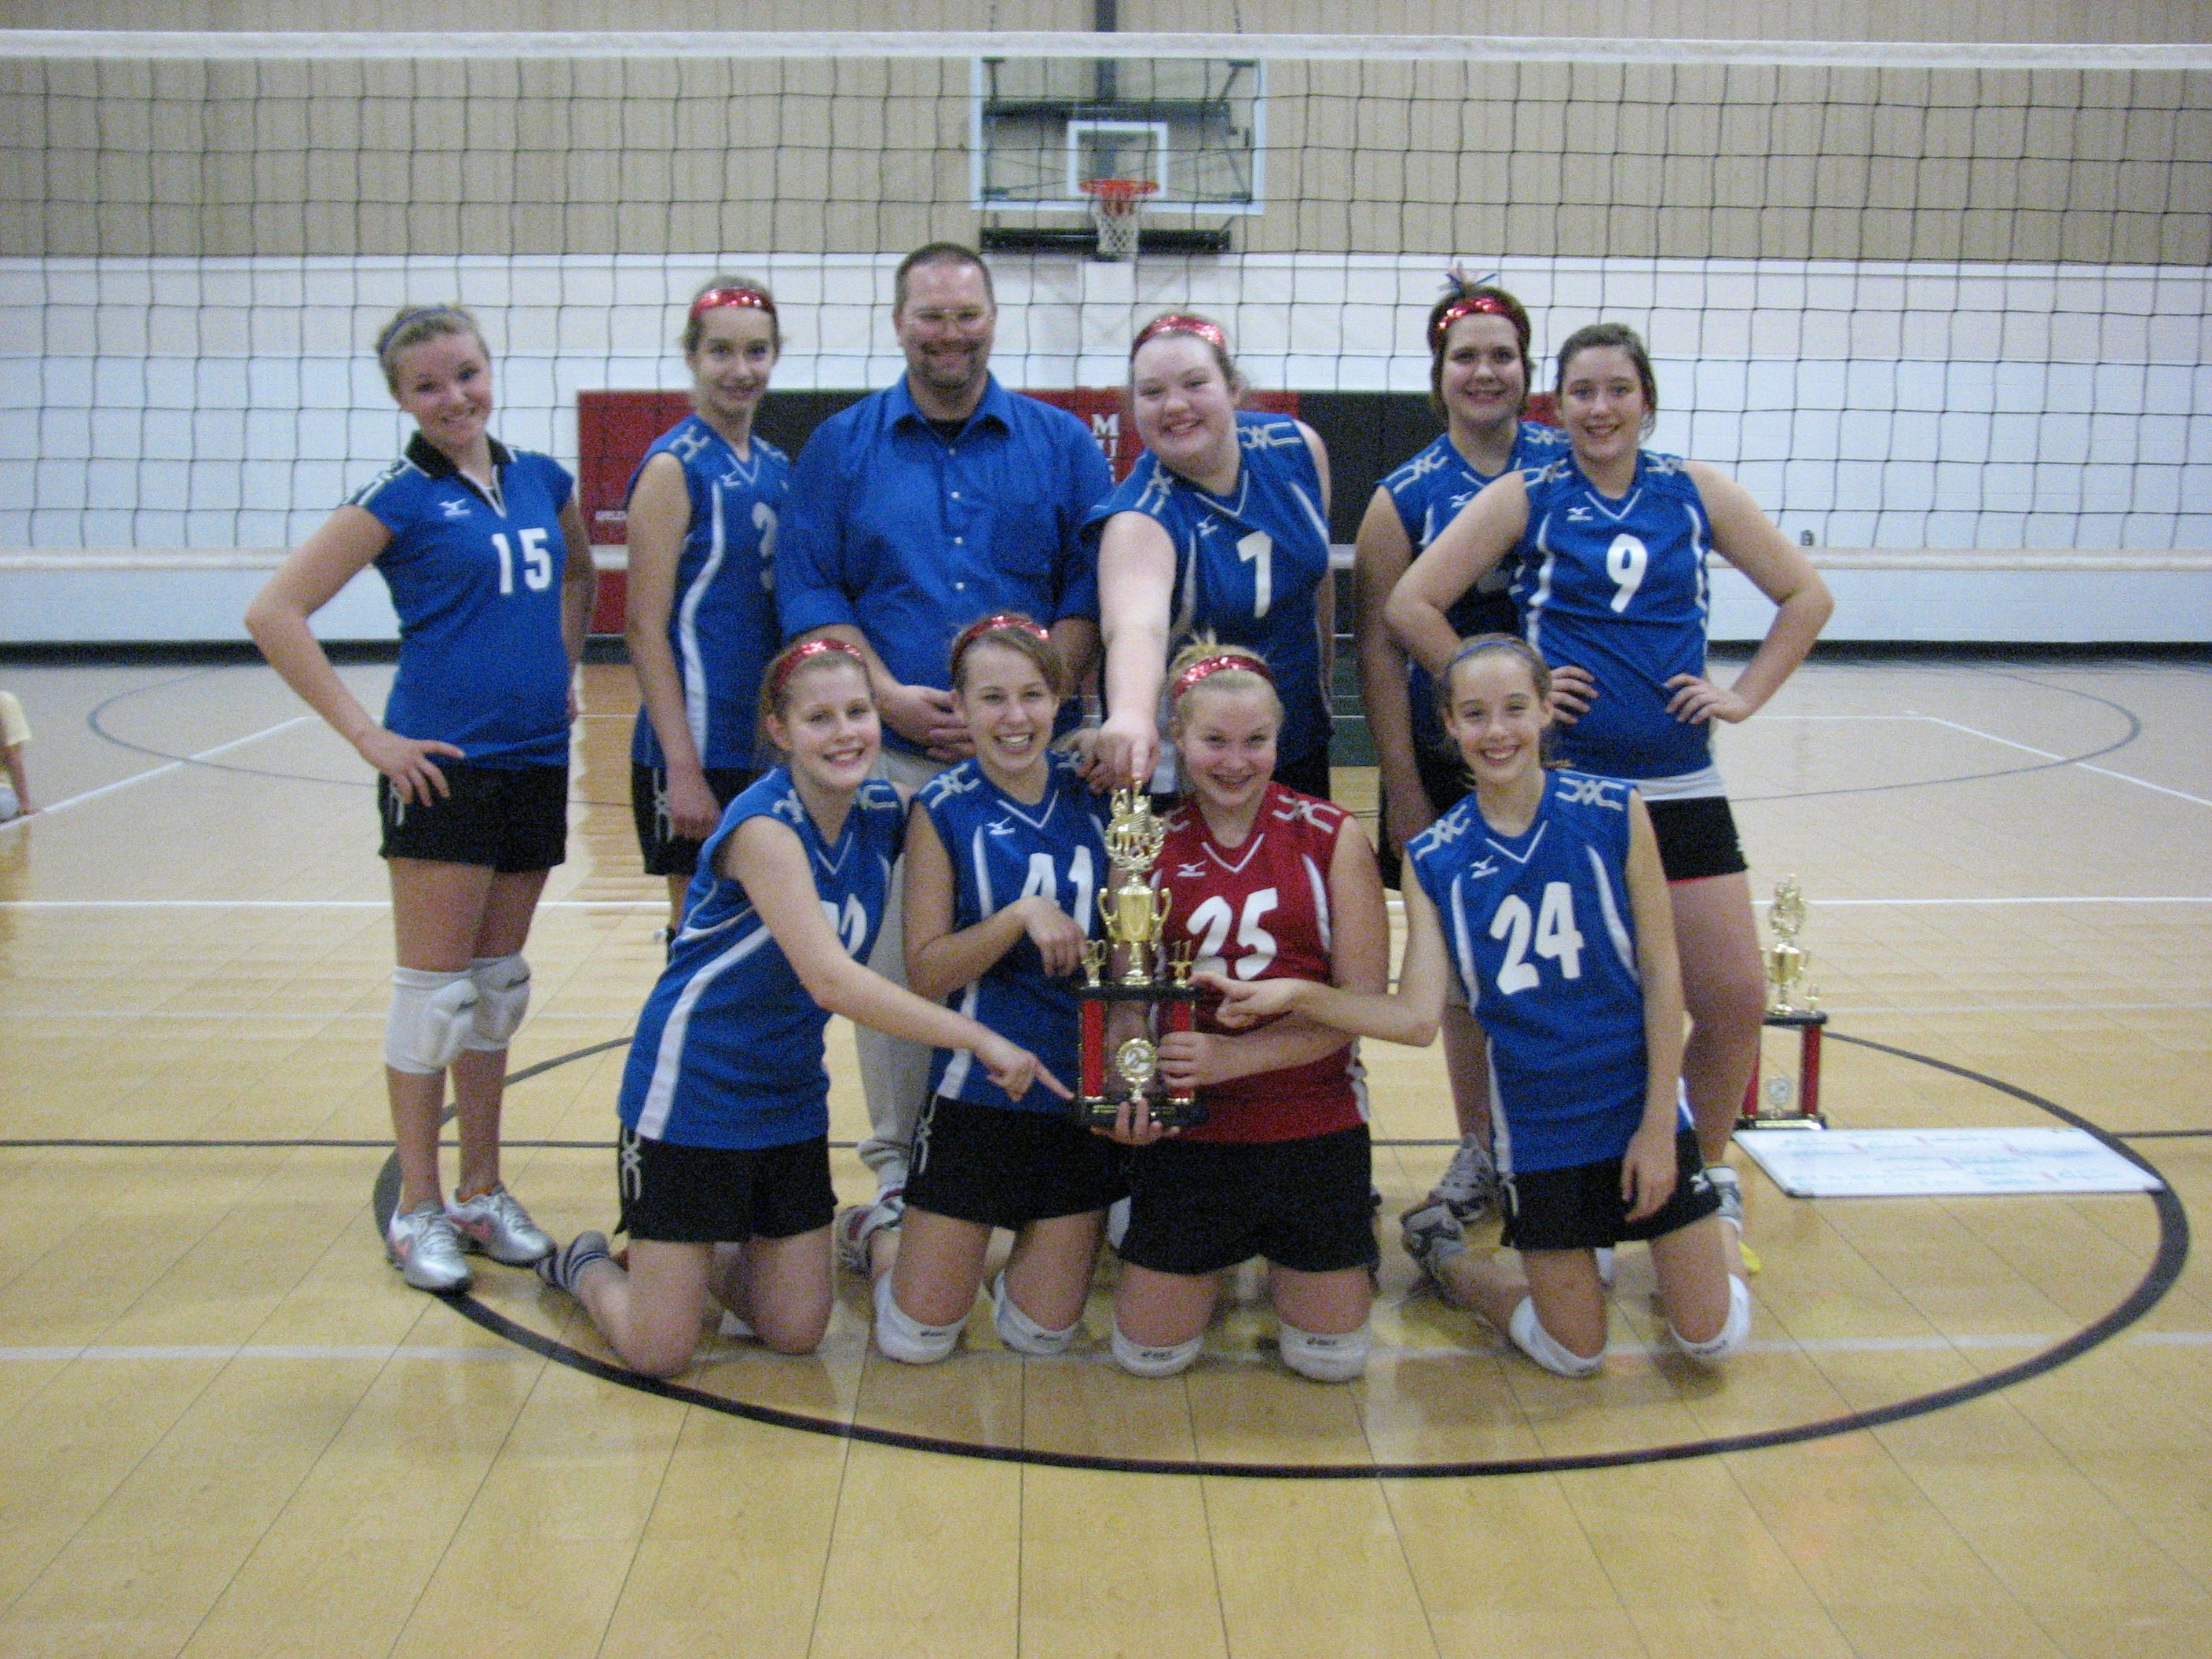 2011 2nd Place Applewood Jv Tournament Kc East Jh Volleyball Team Volleyball Basketball Court